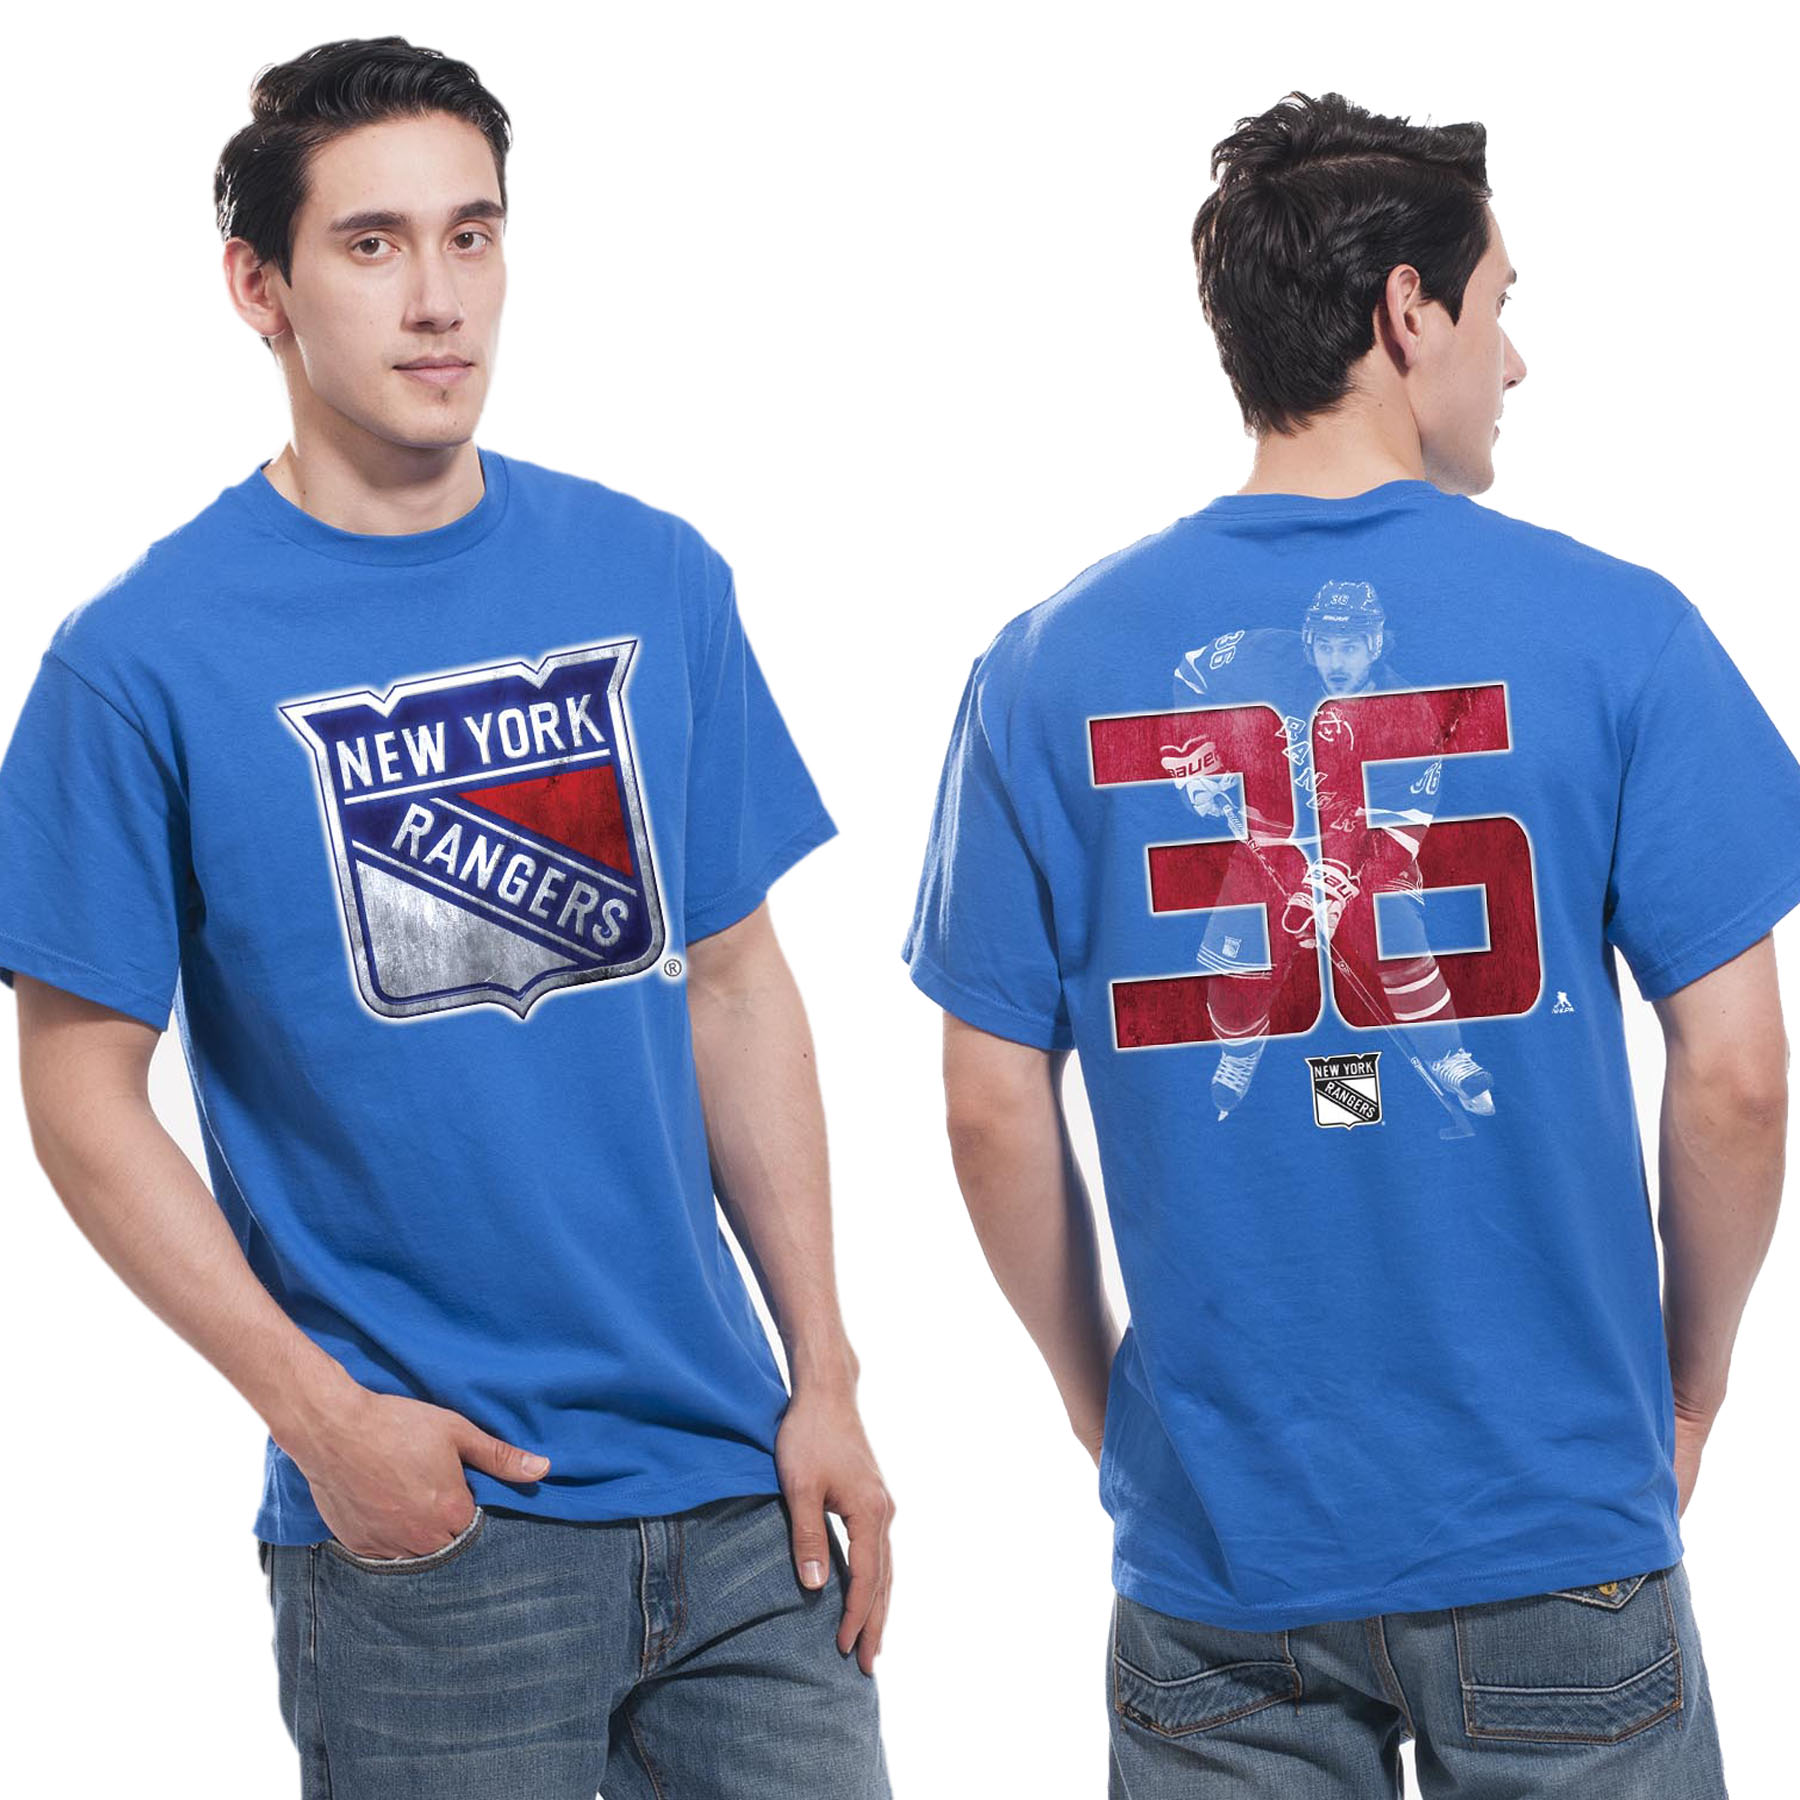 New York Rangers Lightspeed T-Shirt - Mats Zuccarello